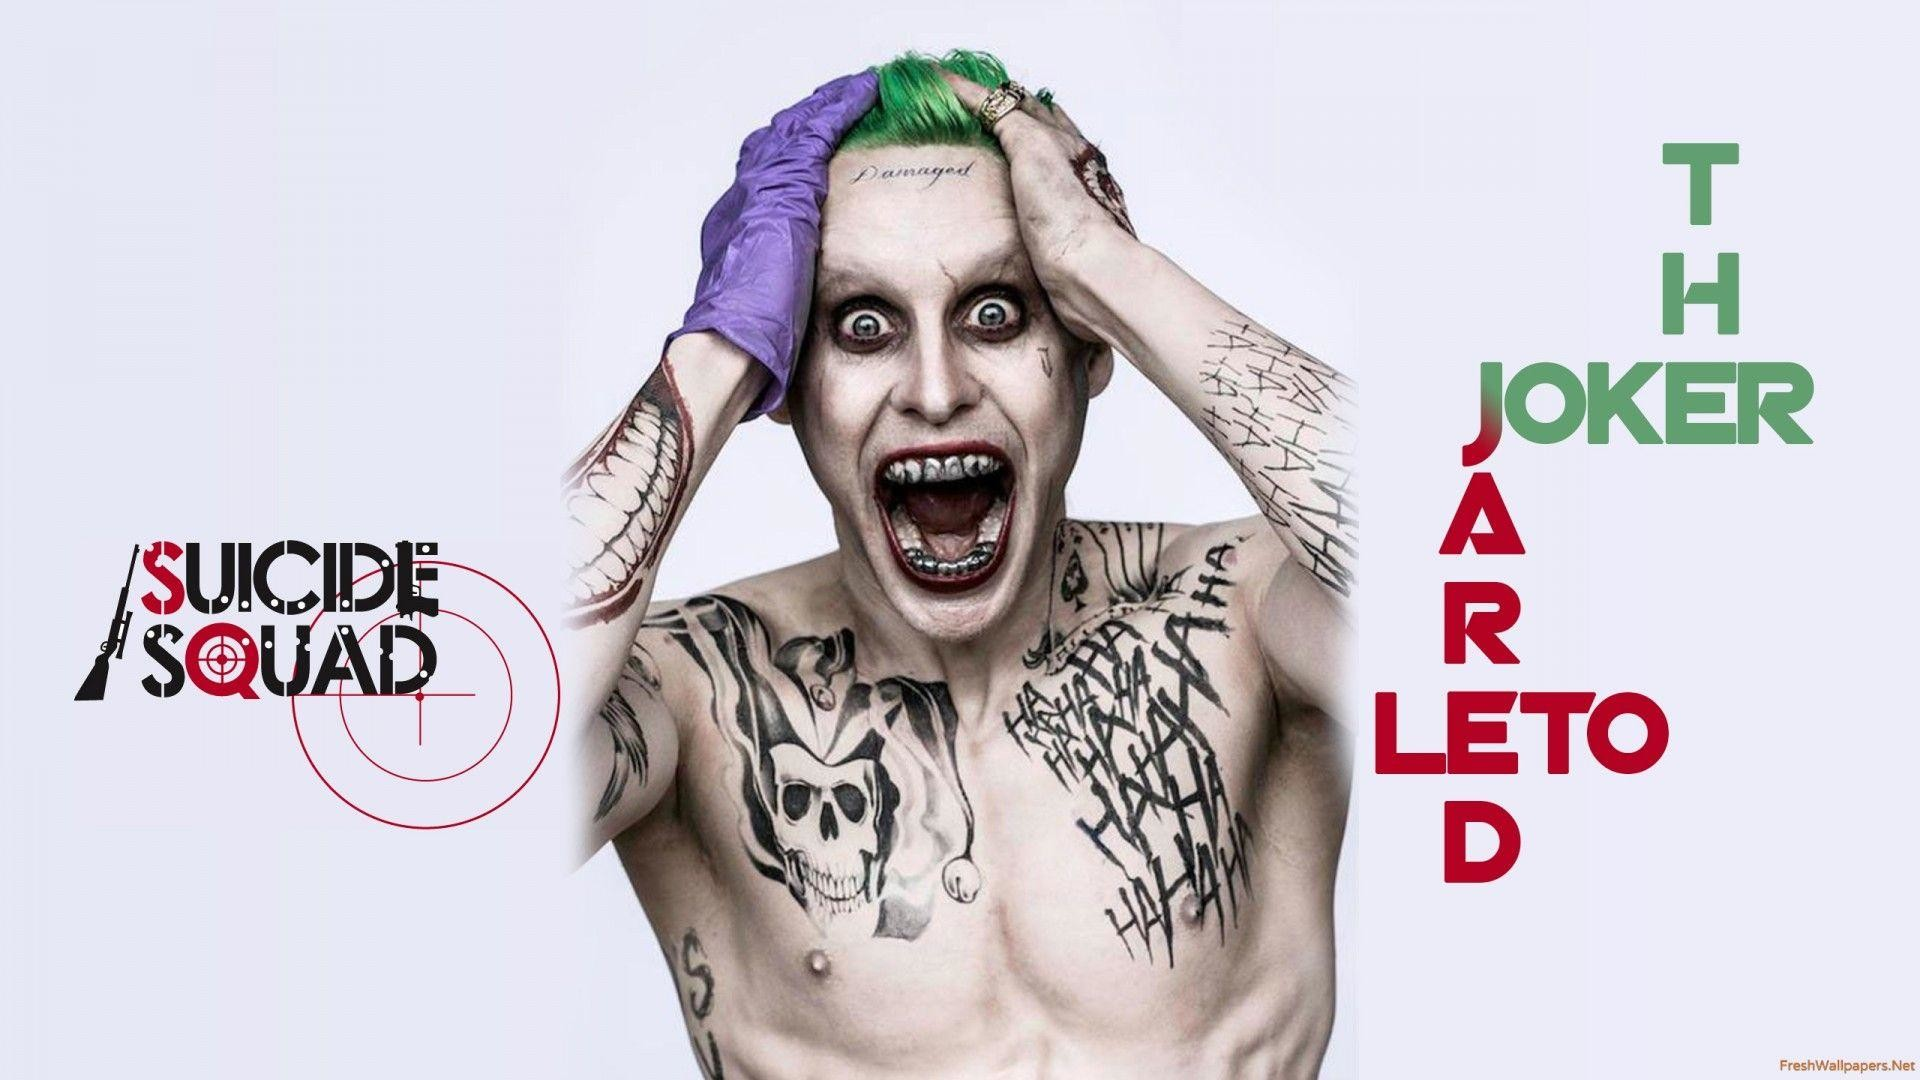 1920x1080 The Joker In Suicide Squad wallpapers | Freshwallpapers